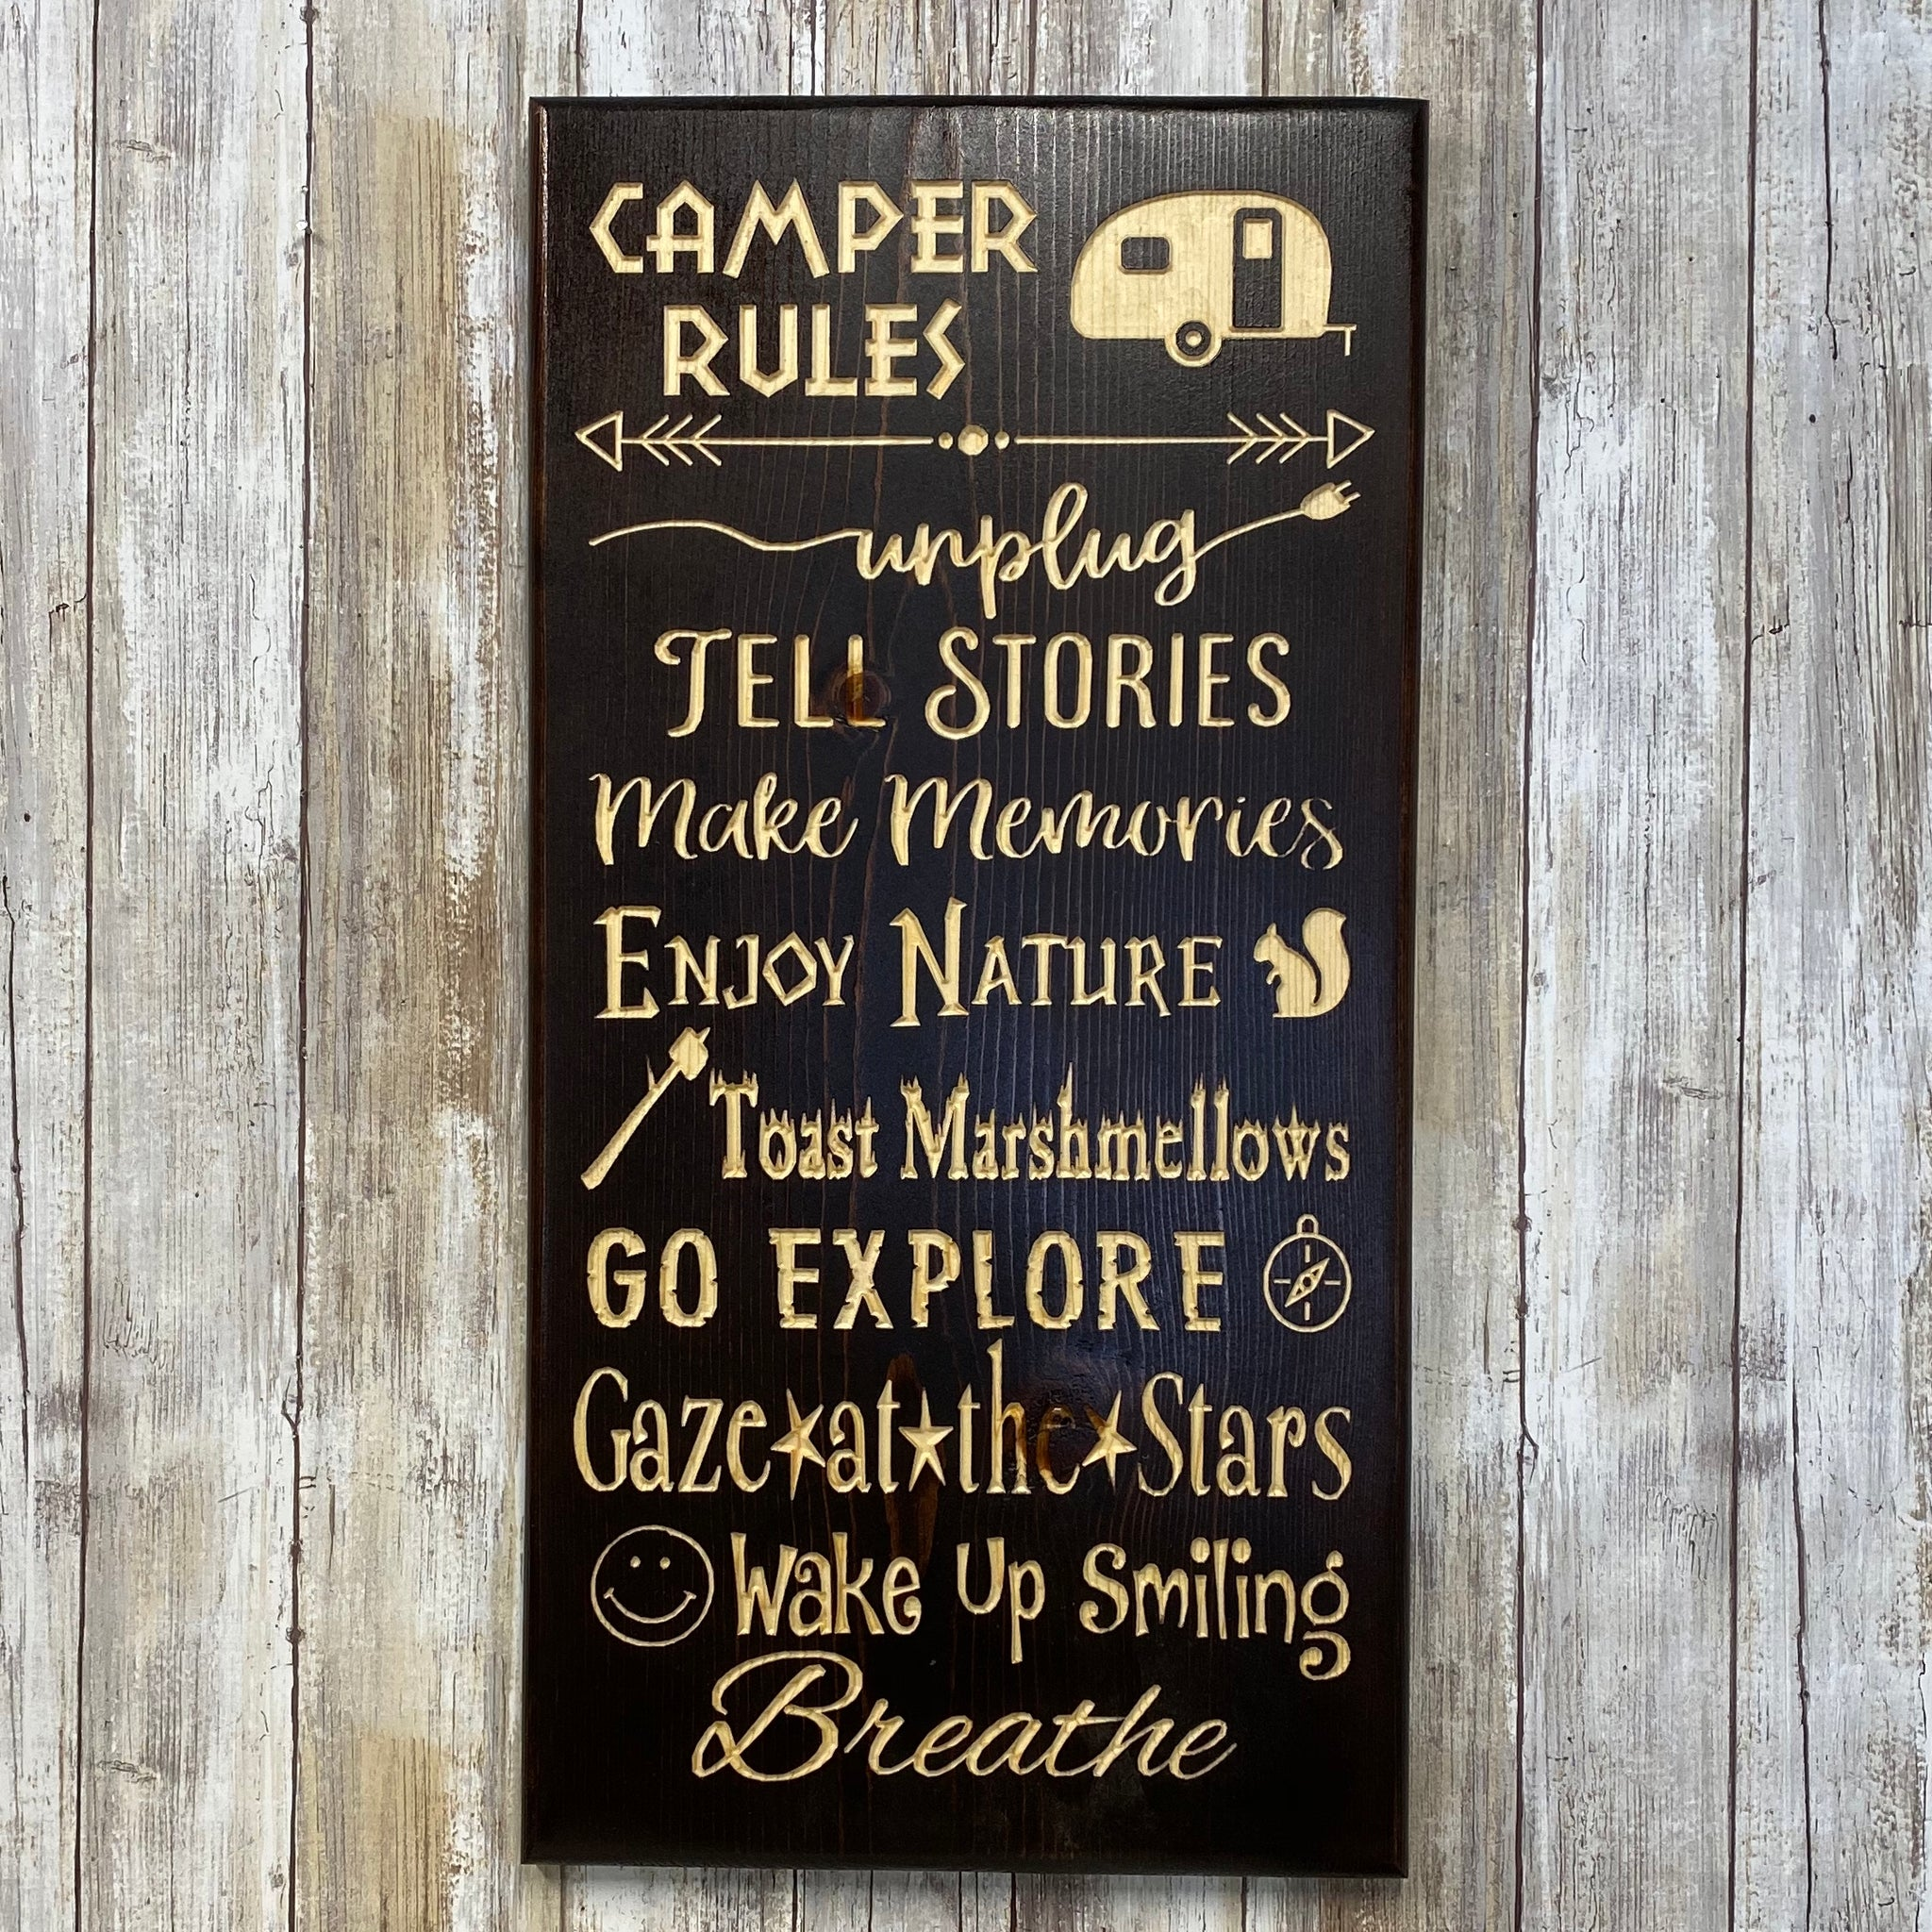 Camper Rules - Wall Hanging Sign - Carved Pine Wood